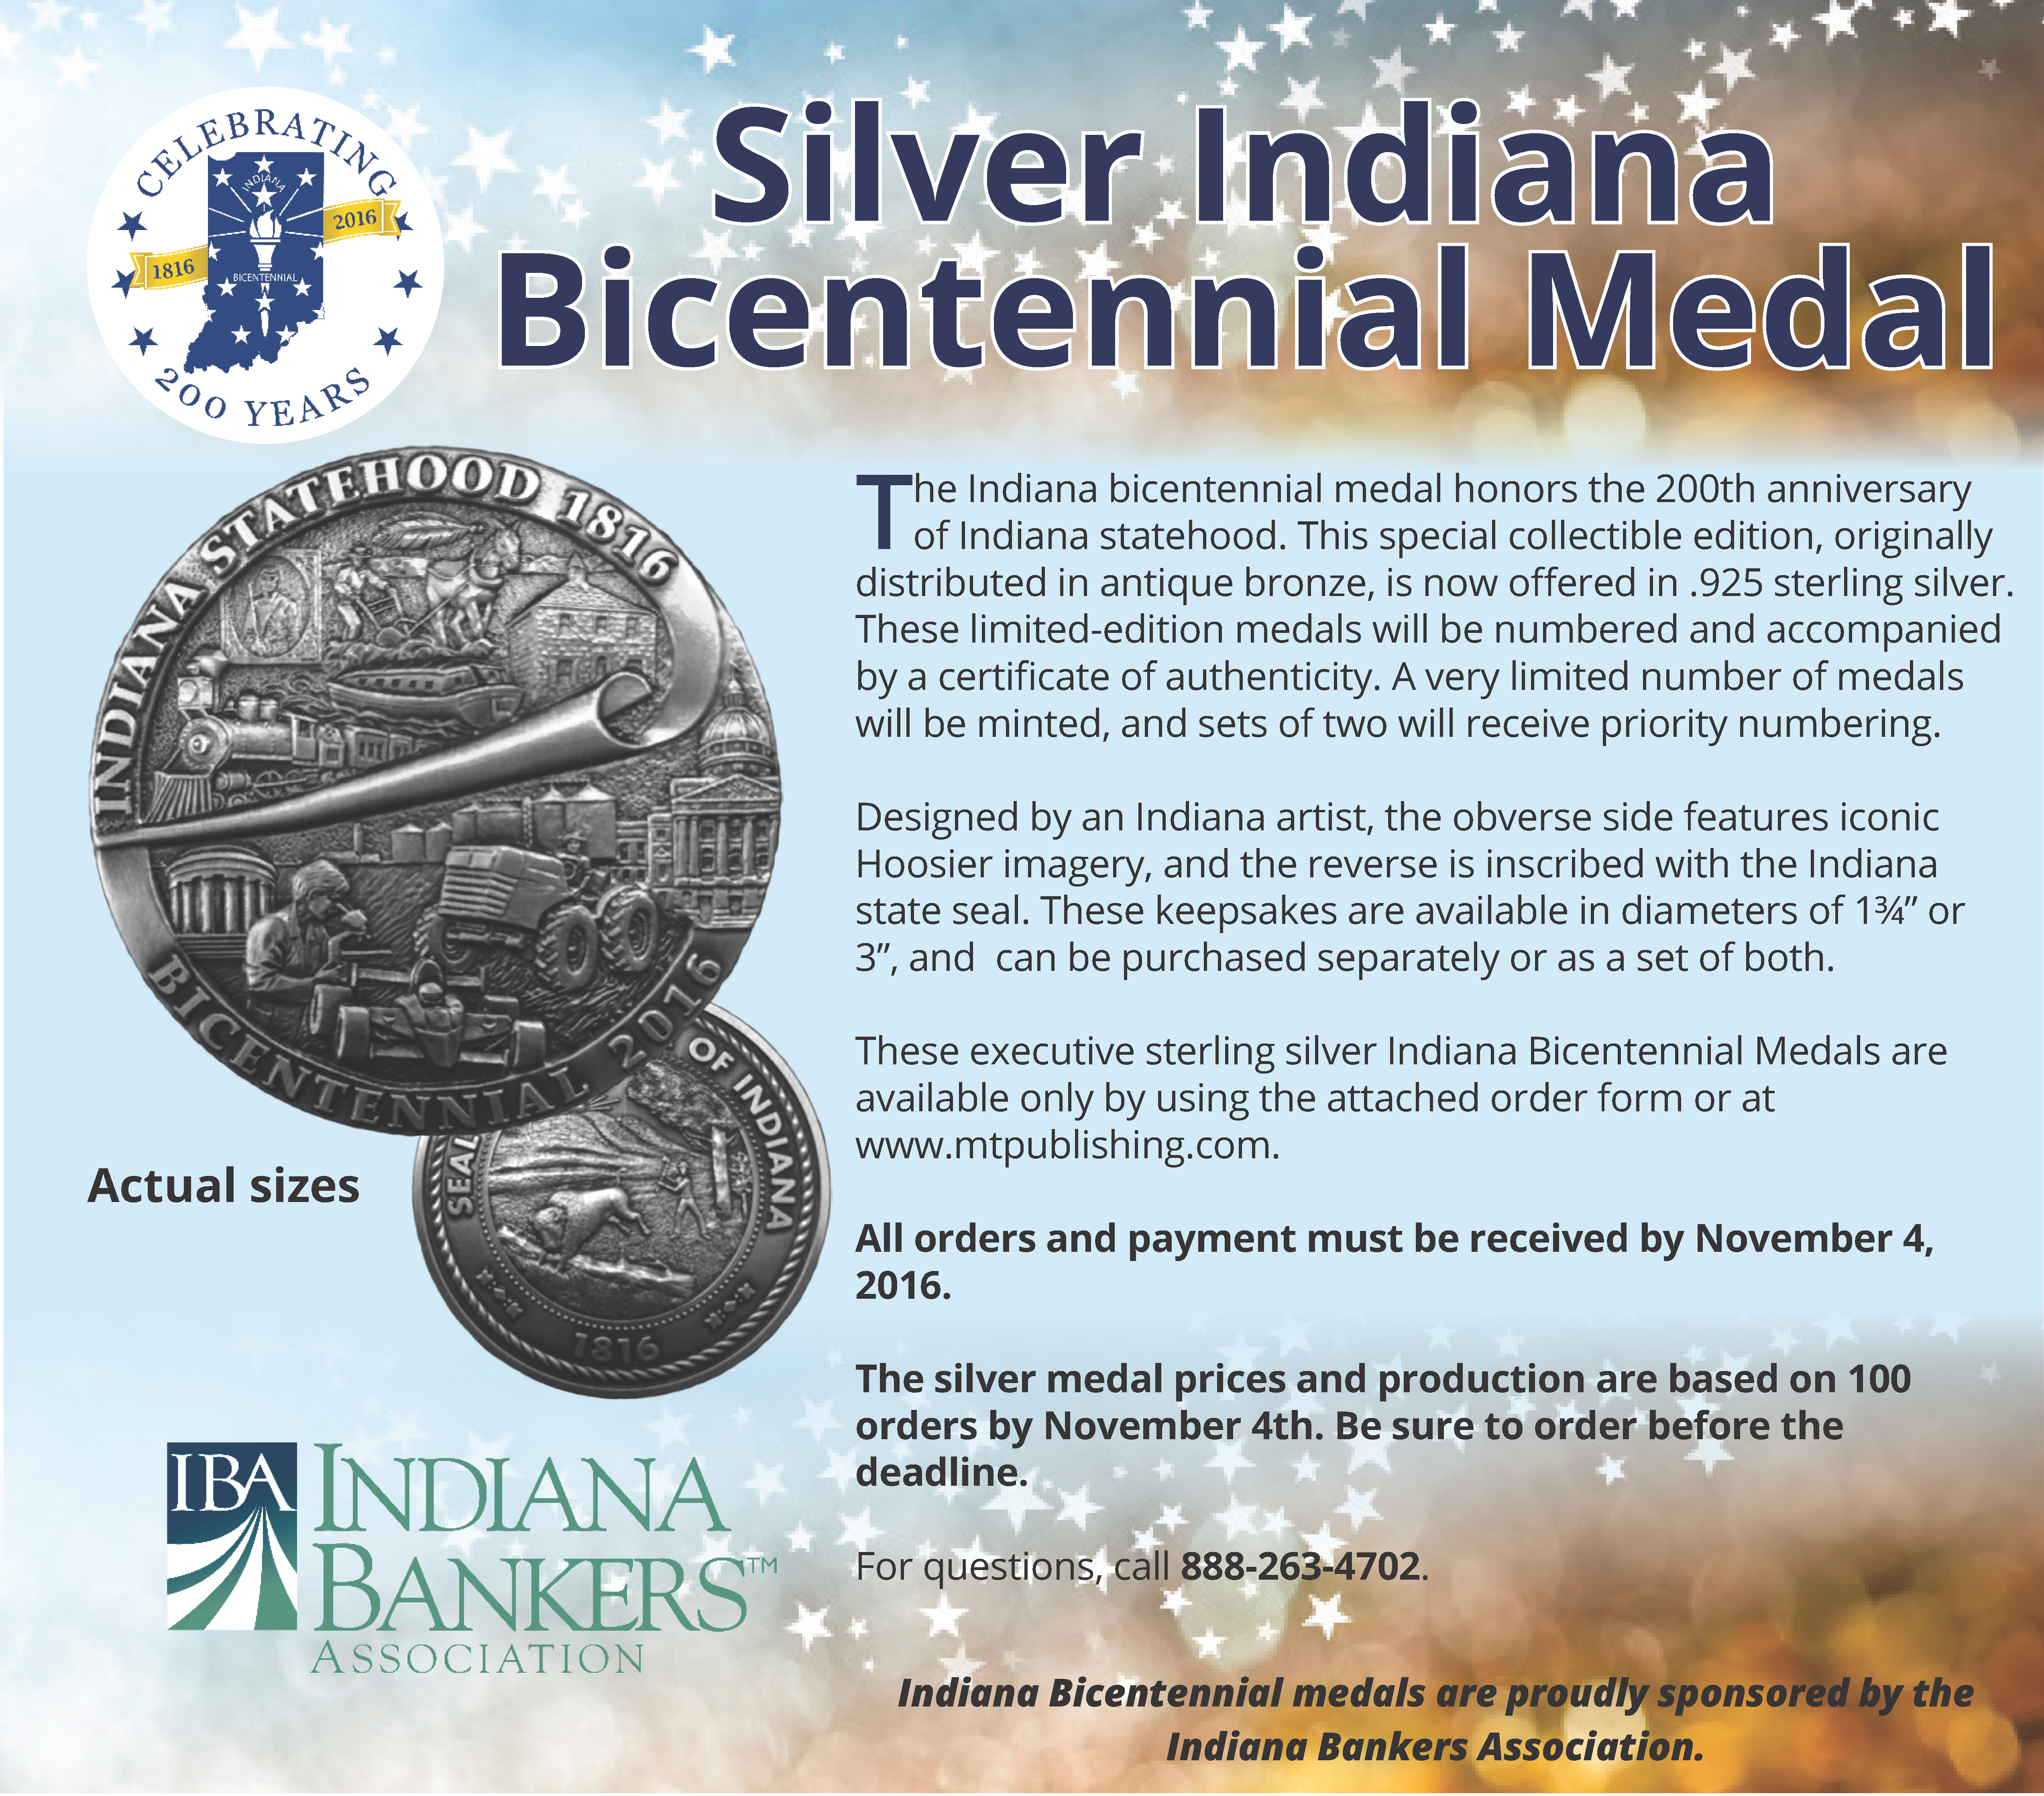 Bicentennial Medal Sterling Silver